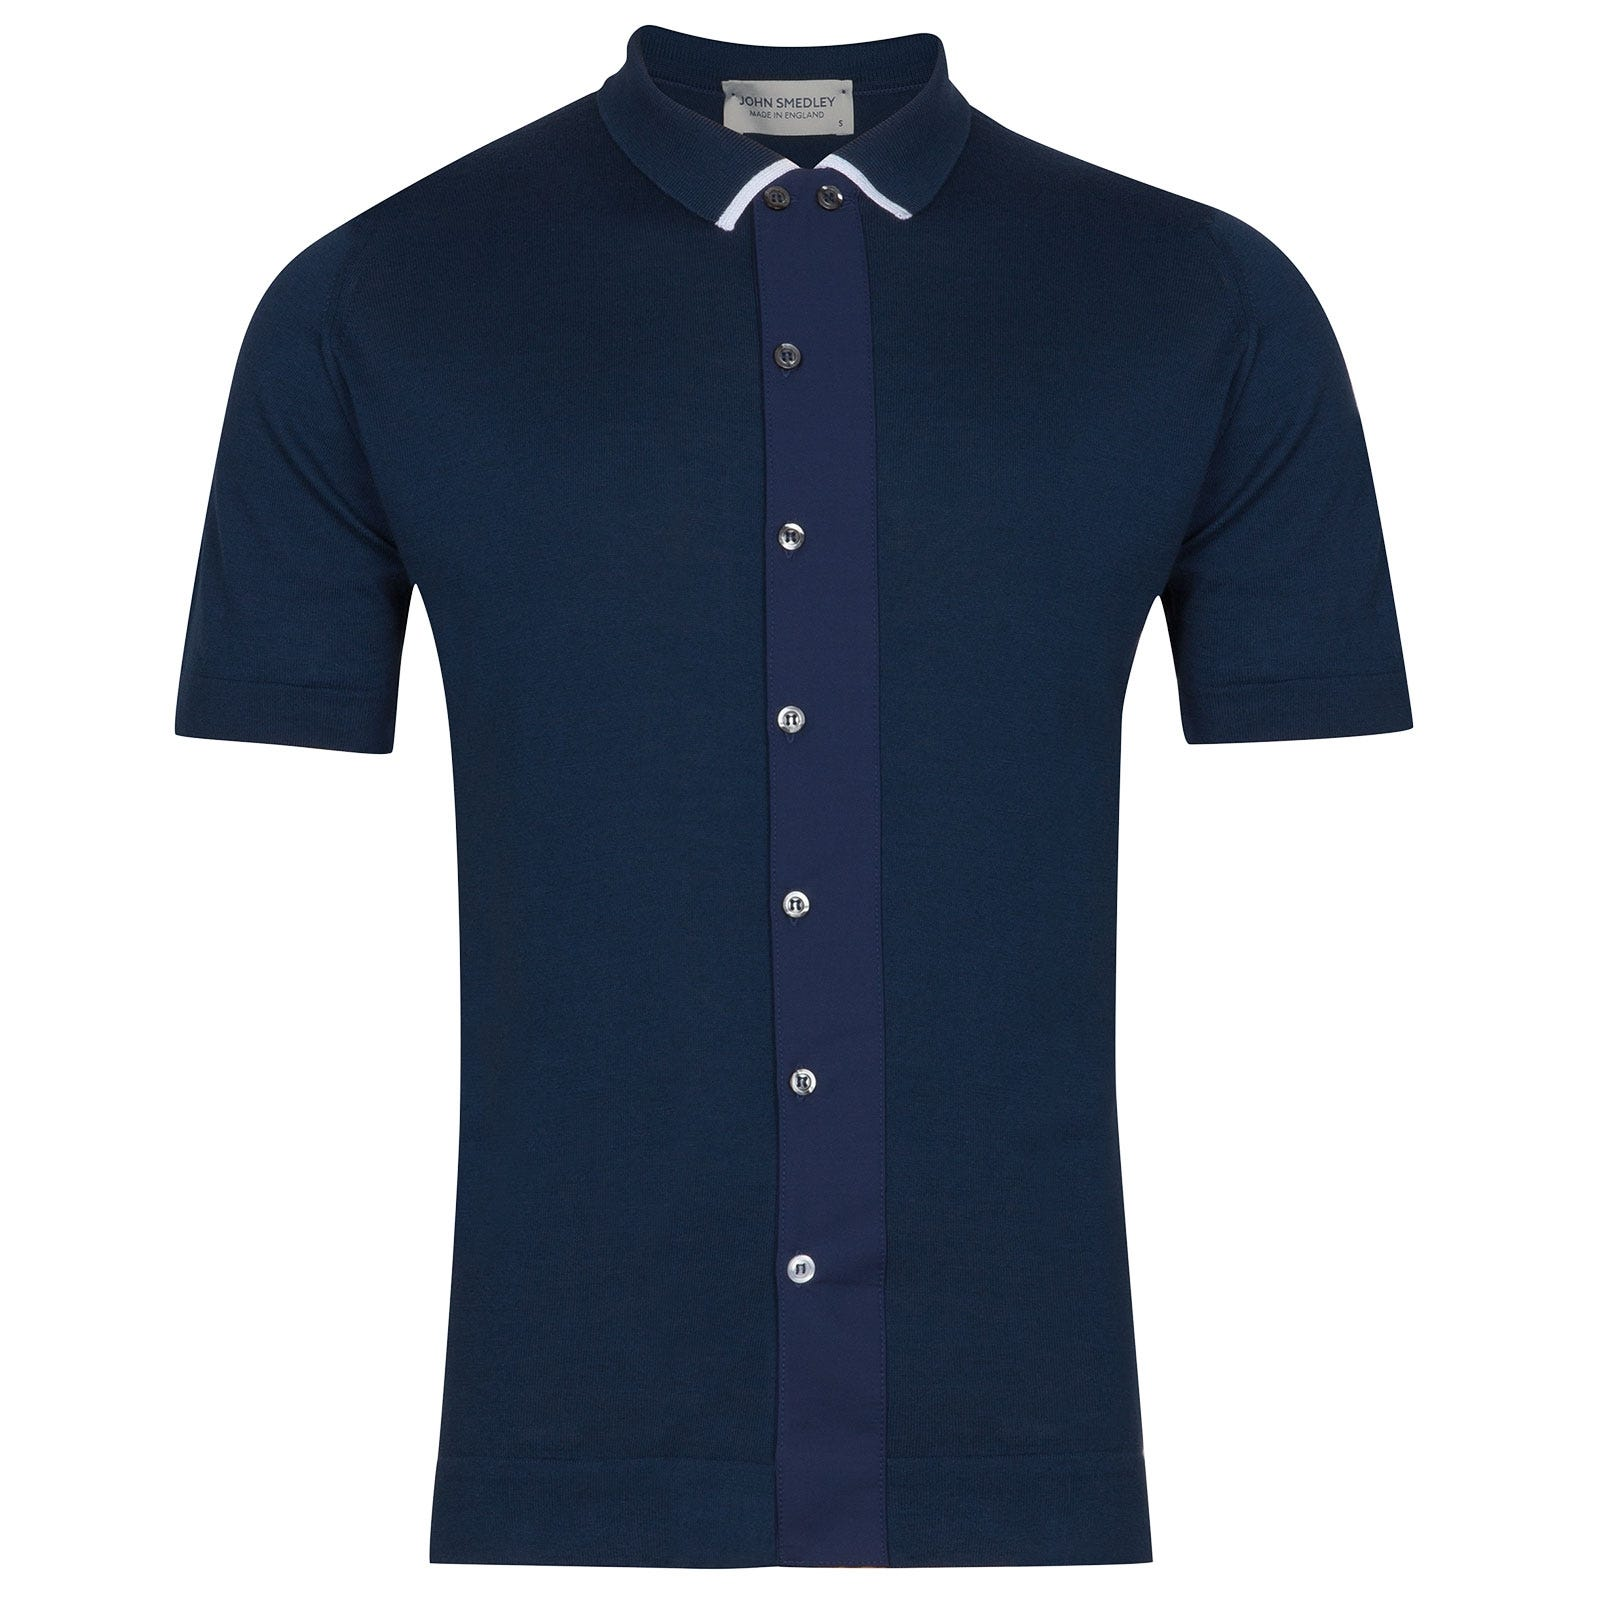 John Smedley molton Sea Island Cotton Polo Shirt in Indigo-XXL